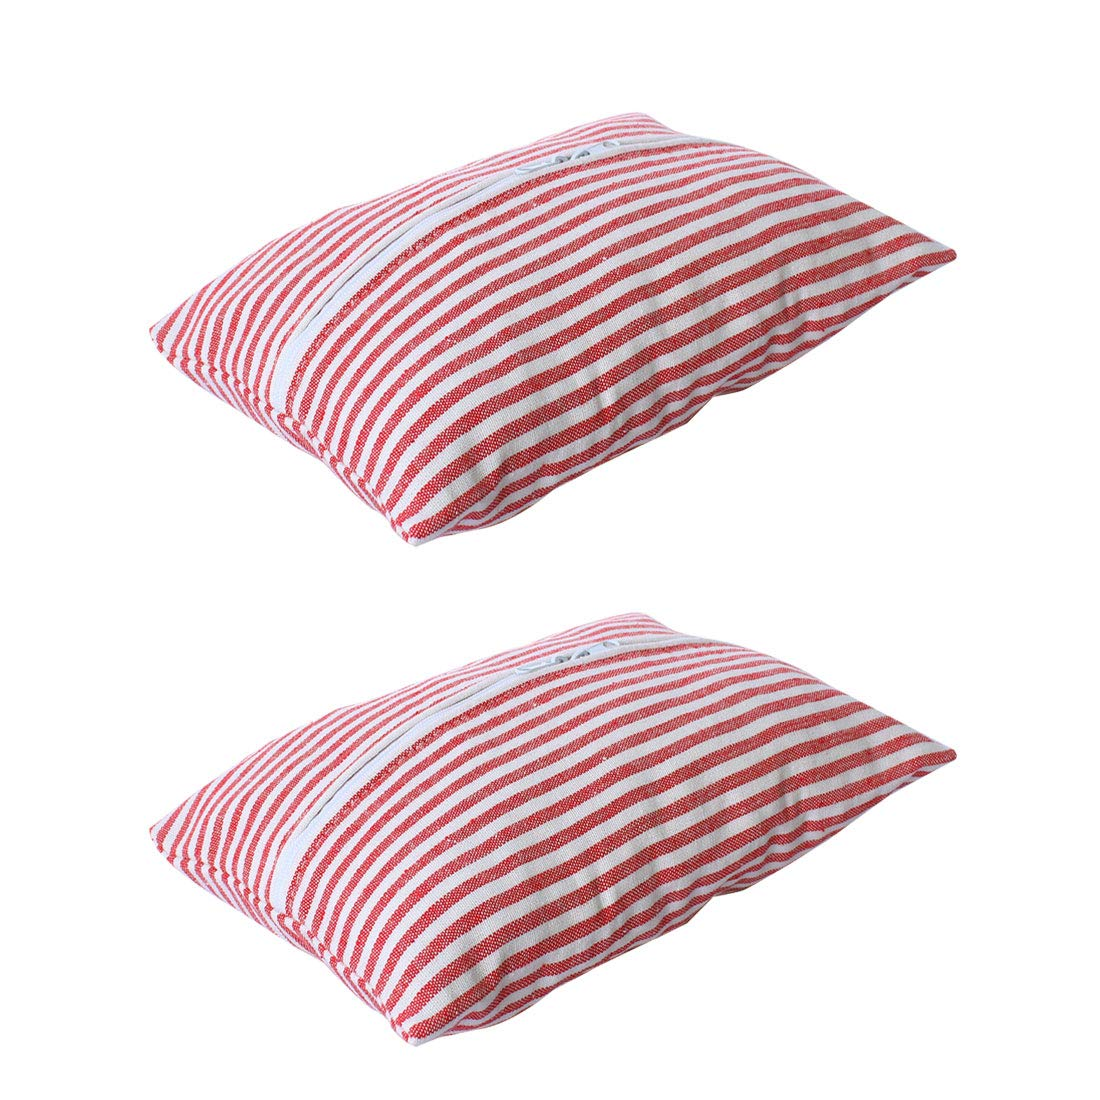 uxcell Tissue Box Container Cotton Linen Rectangle Tissue Holder Paper Storage Bag Organizer Home Decoration Red Stripe 10.2' x 6.7' Set of 2